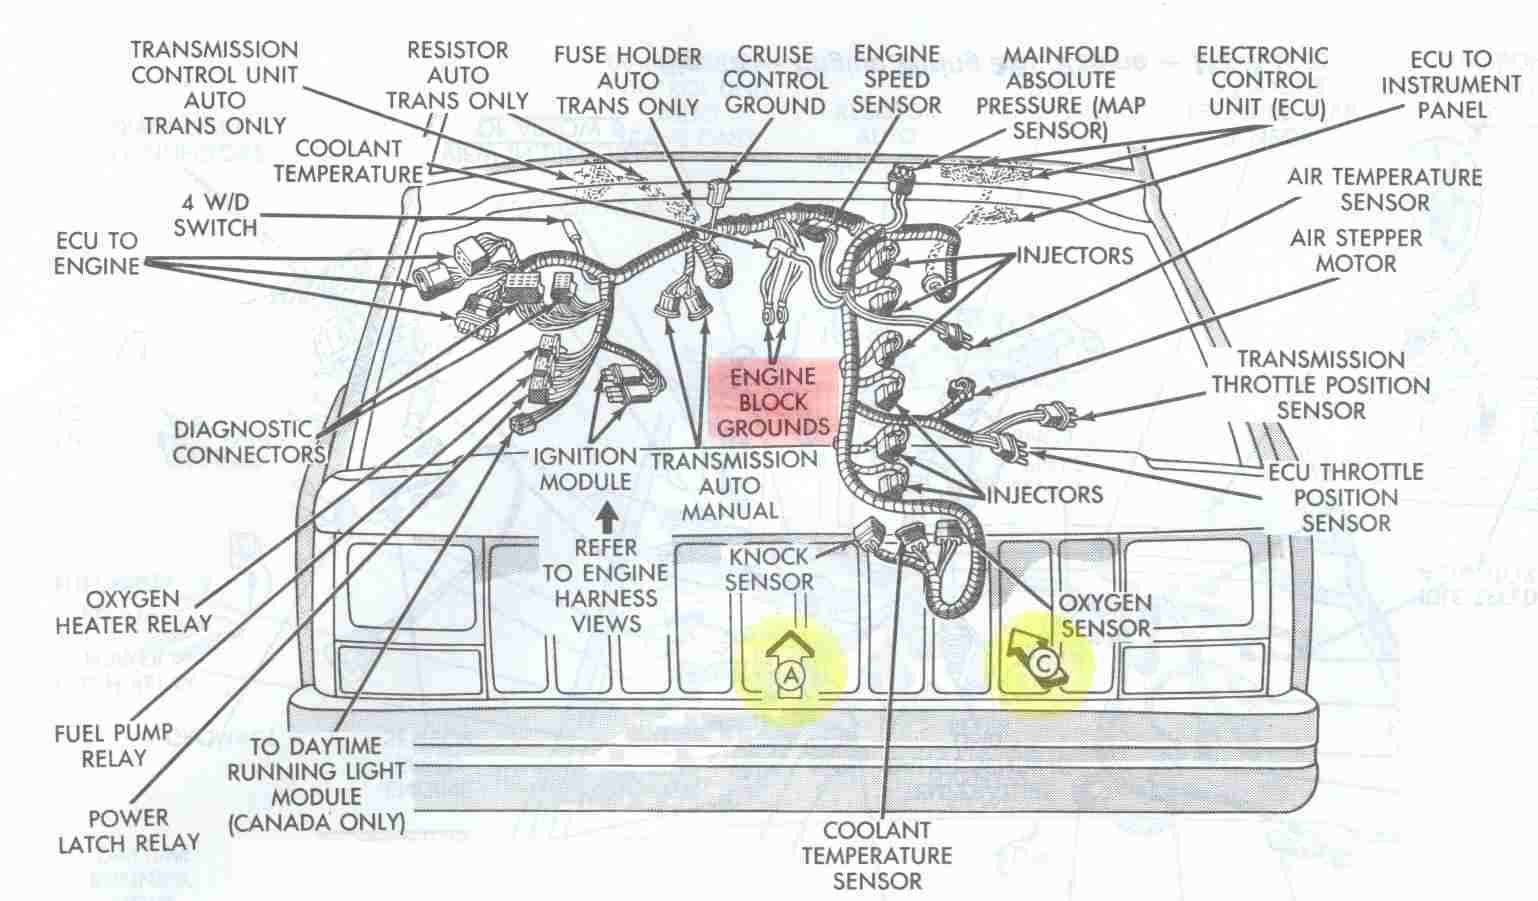 ab0134a7d9e021431187af597eb4aeca engine bay schematic showing major electrical ground points for 1998 jeep grand cherokee engine wiring harness at crackthecode.co